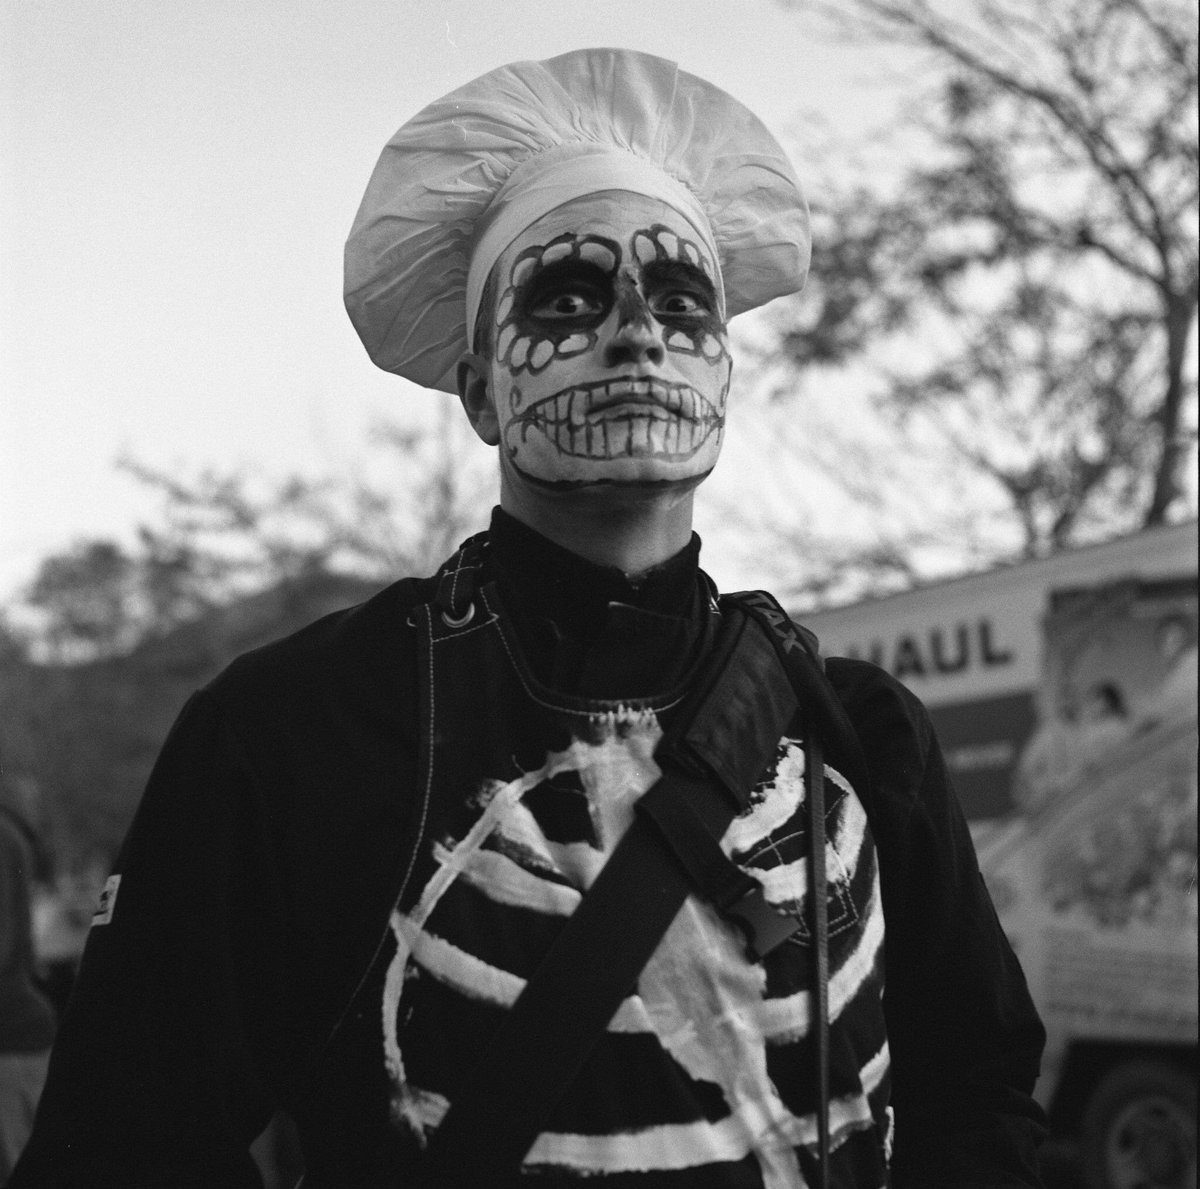 @mt_photo_ May 15 Hootlet More Zombie Baker. Ilford Delta 400 in 120. shot at 1600. Pushed 2 stops in development. Shot with Minolta Autocord. #ilfordphoto #fridayfavourites #shotat1600